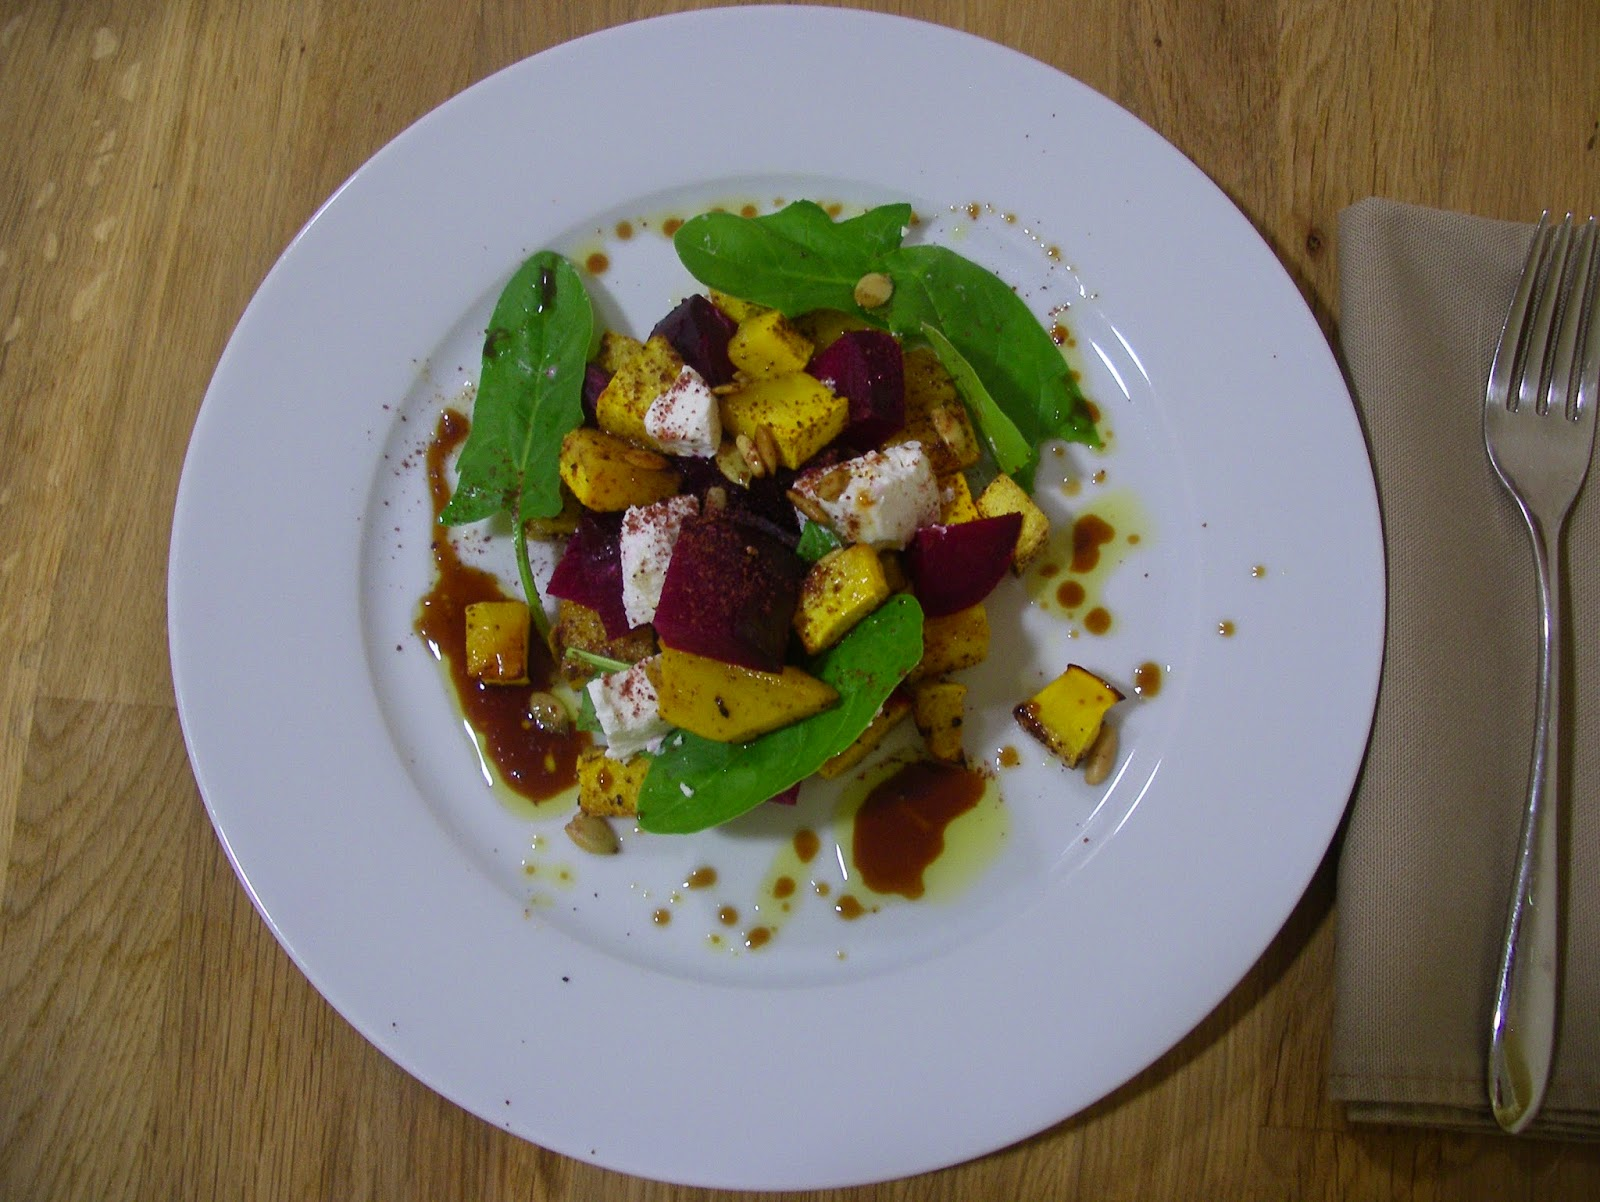 Pumpkin and beetroot salad with goat cheese